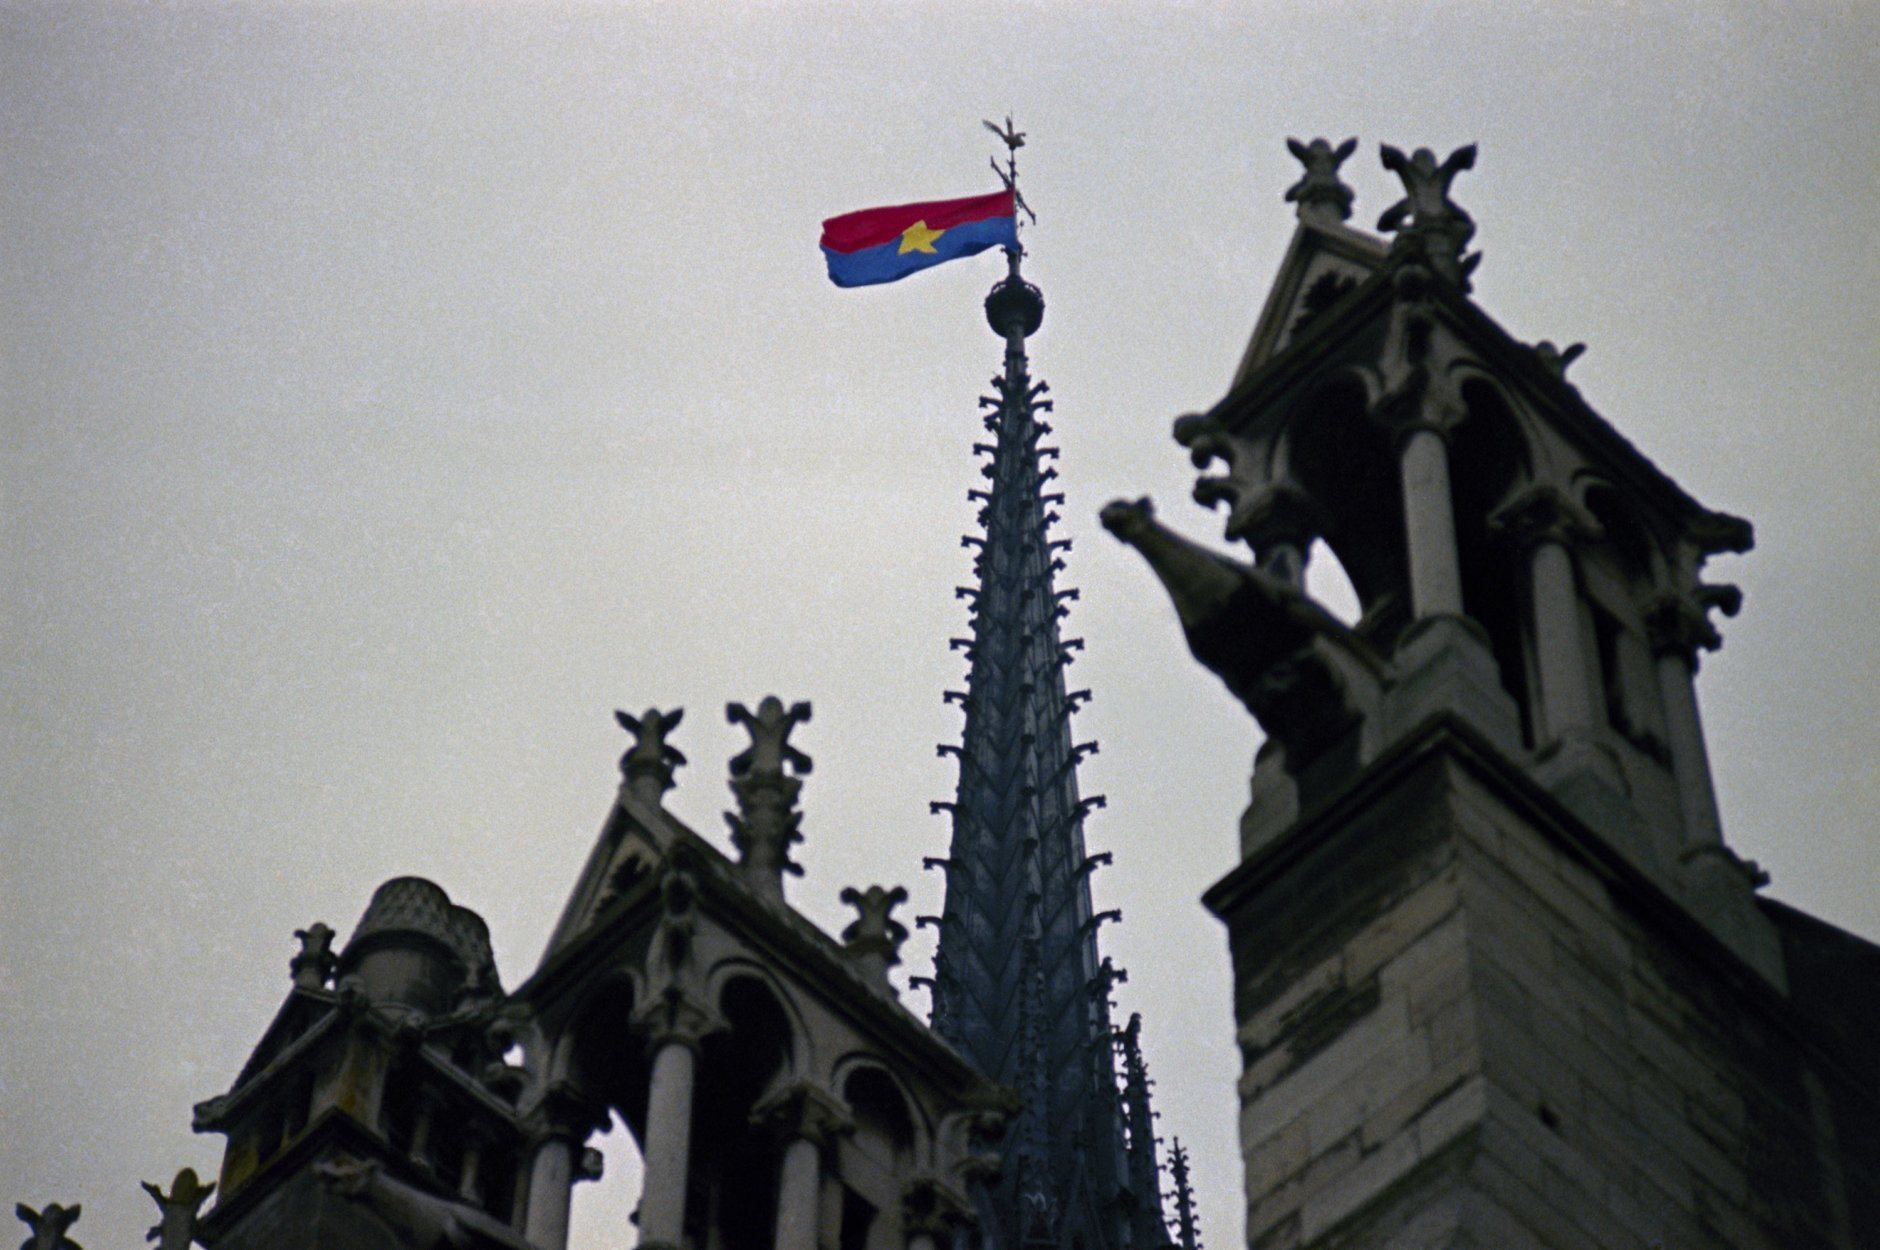 A North Vietnam flag flies from the pinnacle of Notre Dame Cathedral in Paris, France on Jan. 19, 1969 as peace talks on a possible cease-fire in Vietnam had started on previous day. (AP Photo)